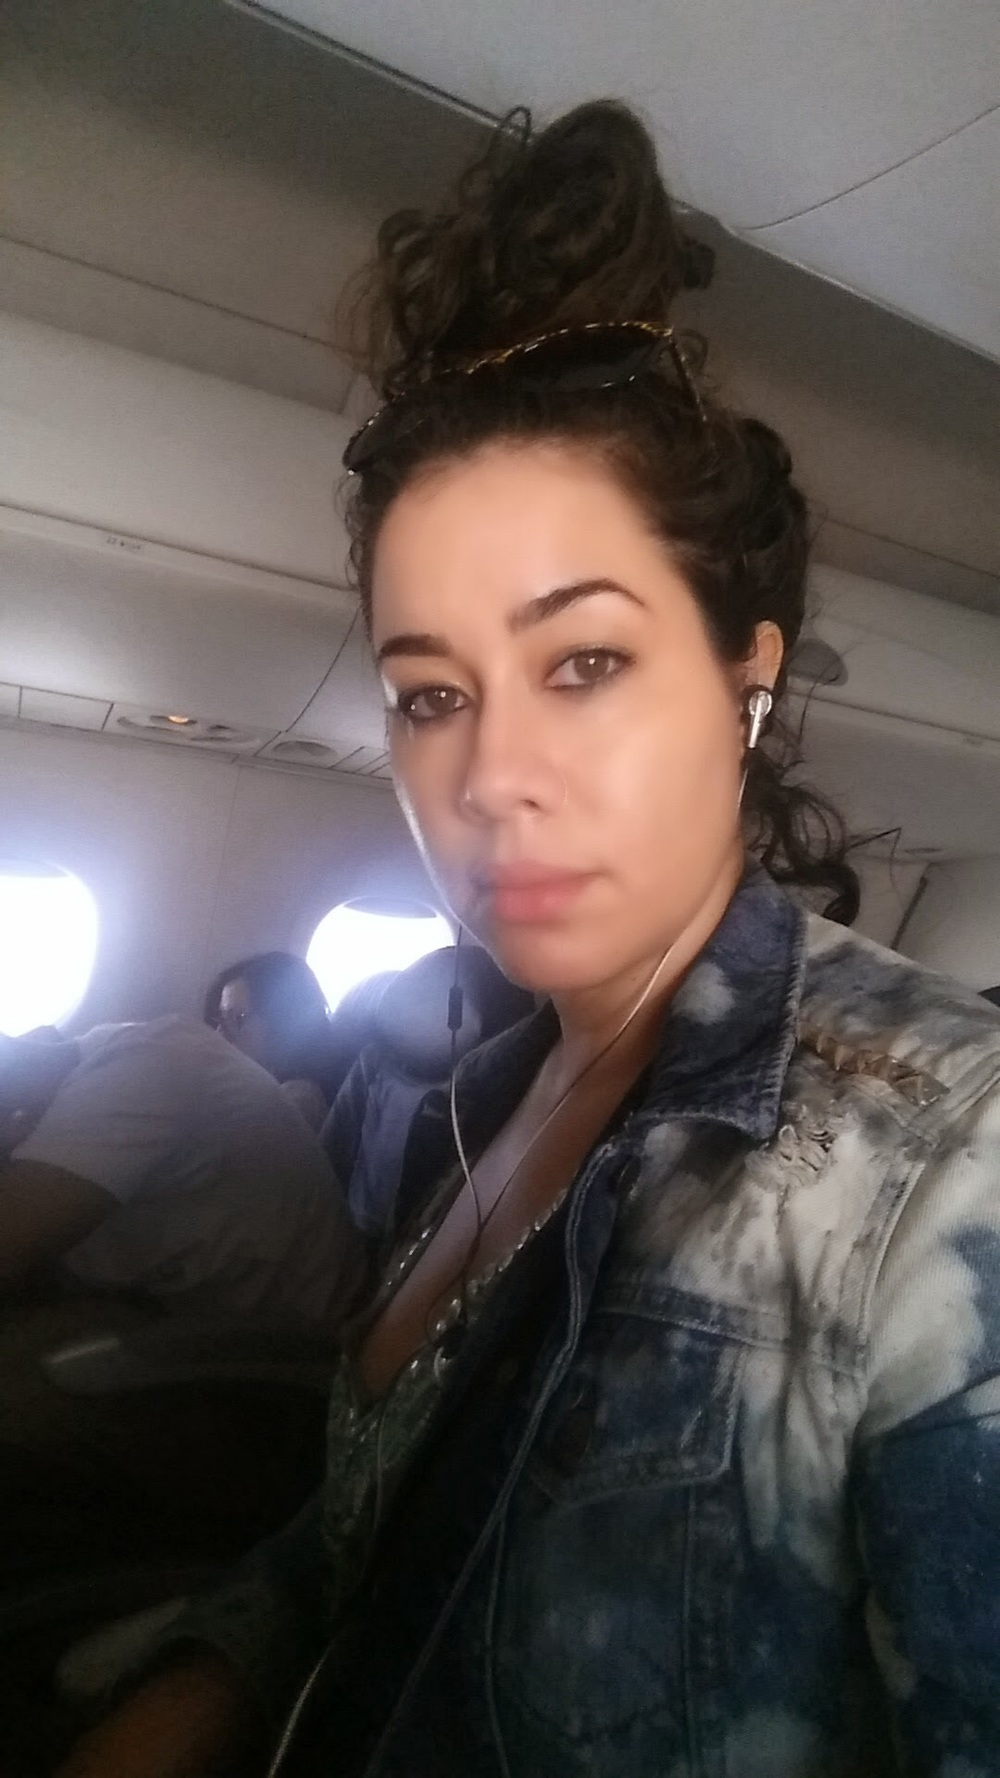 Earbuds & top-knots: My airplane selfie!